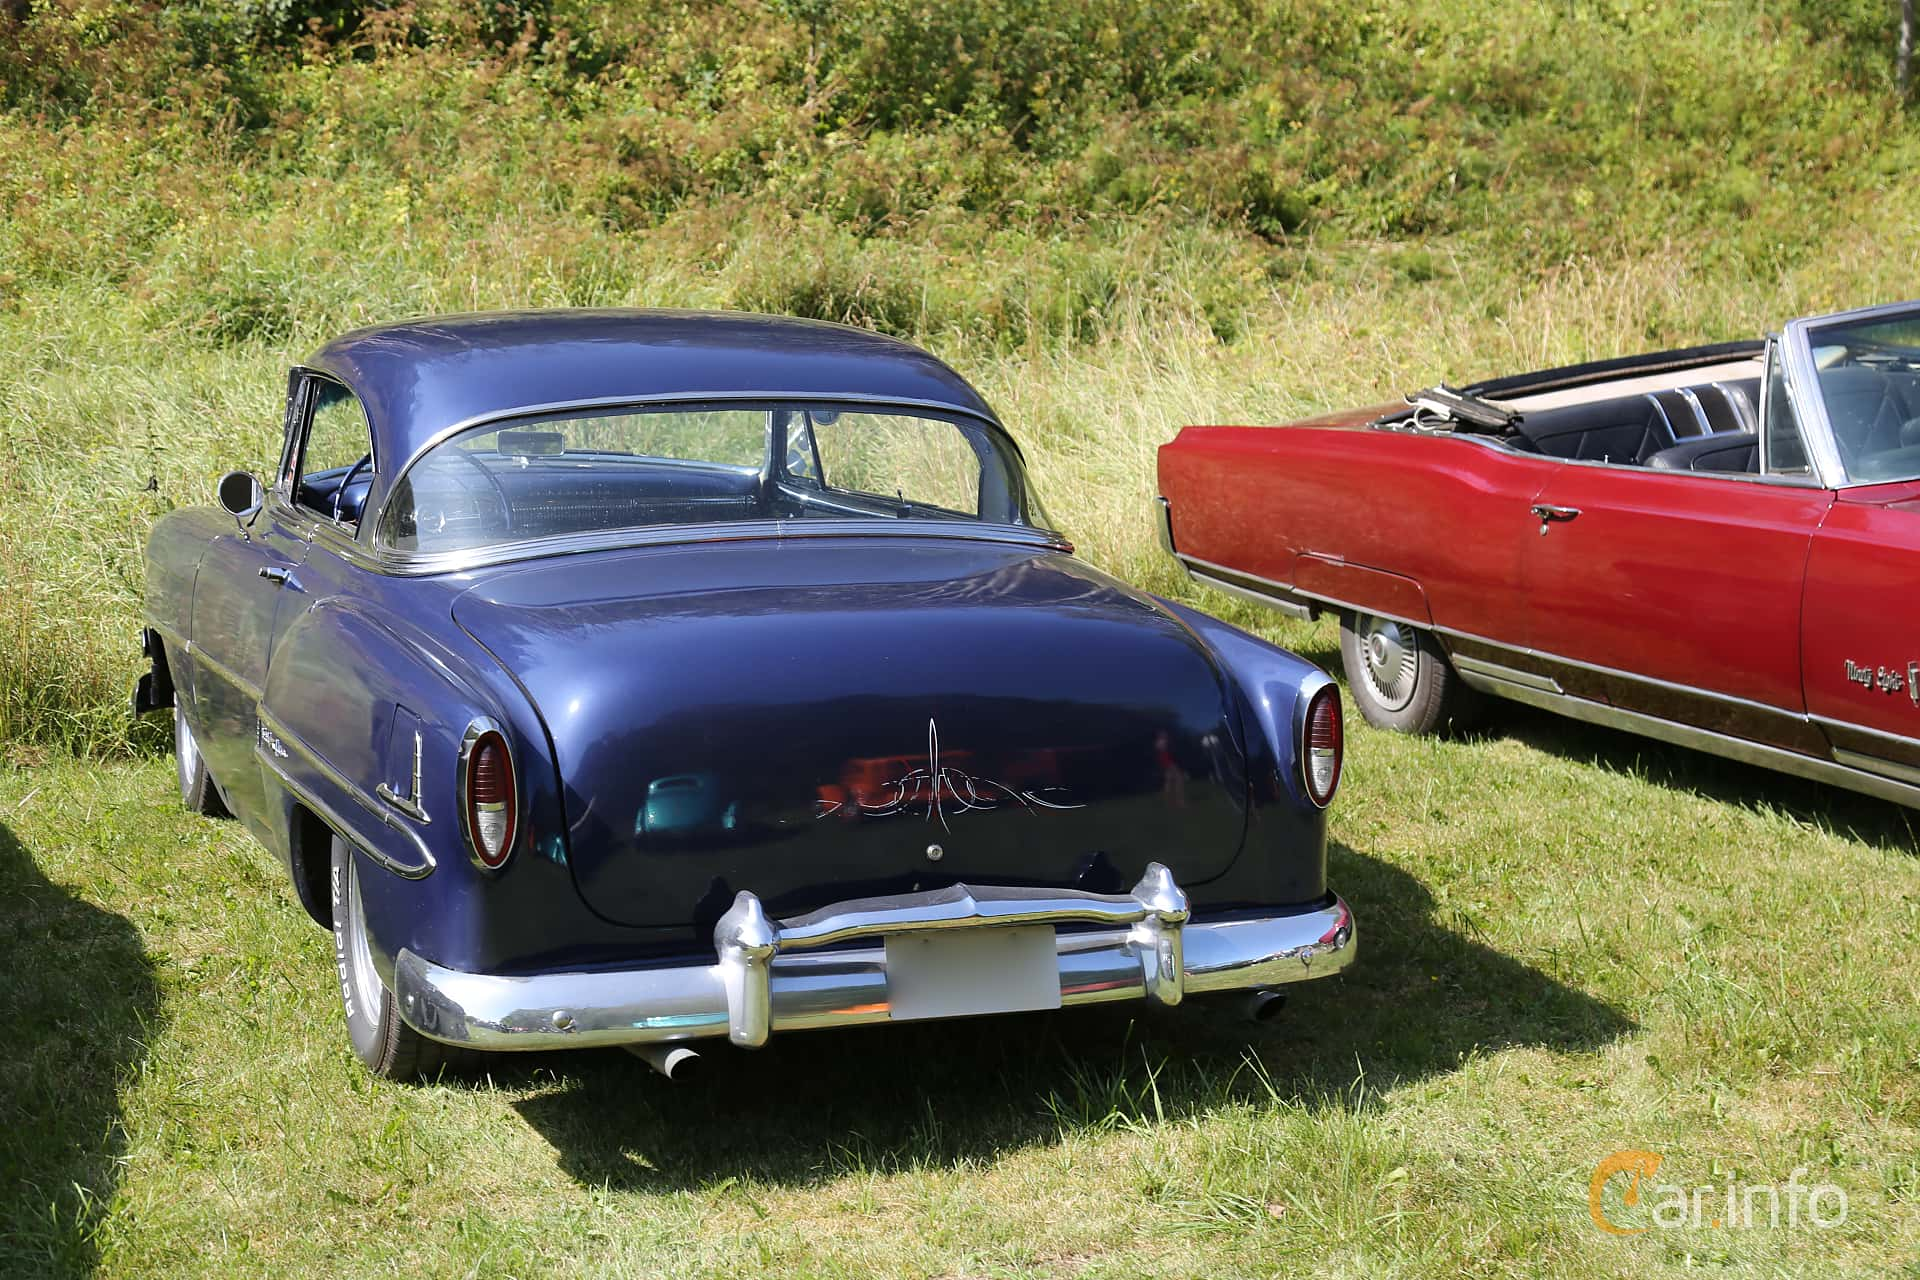 Back/Side of Chevrolet Bel Air Sport Coupé 1954 at A-bombers - Old Style Weekend Backamo 2019